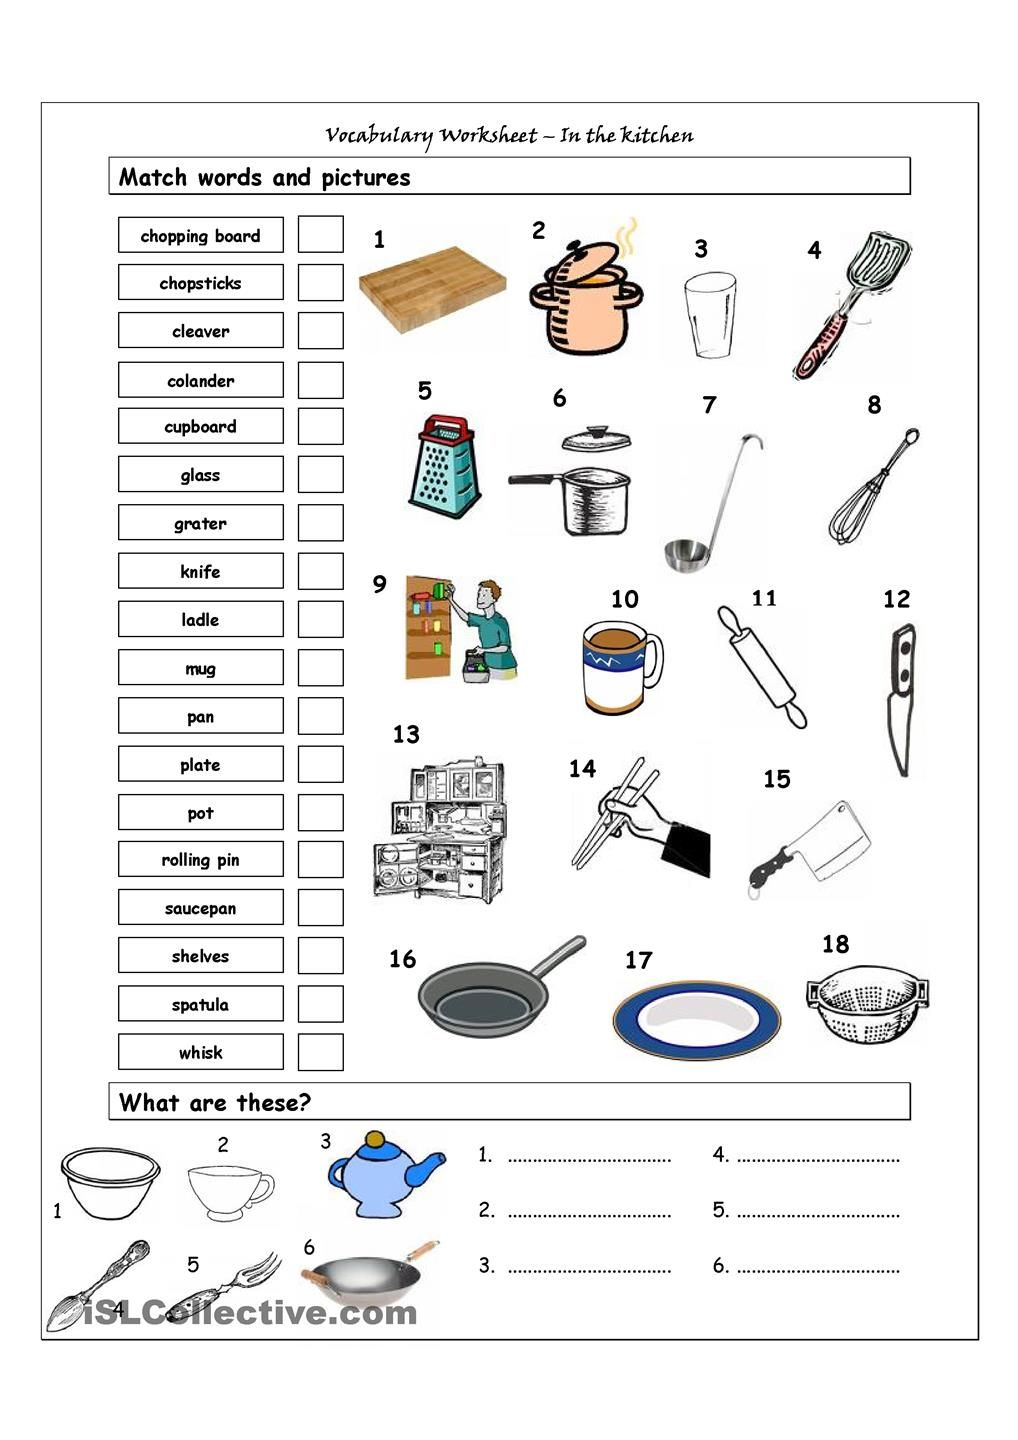 Vocabulary Matching Worksheet In The Kitchen Life Skills